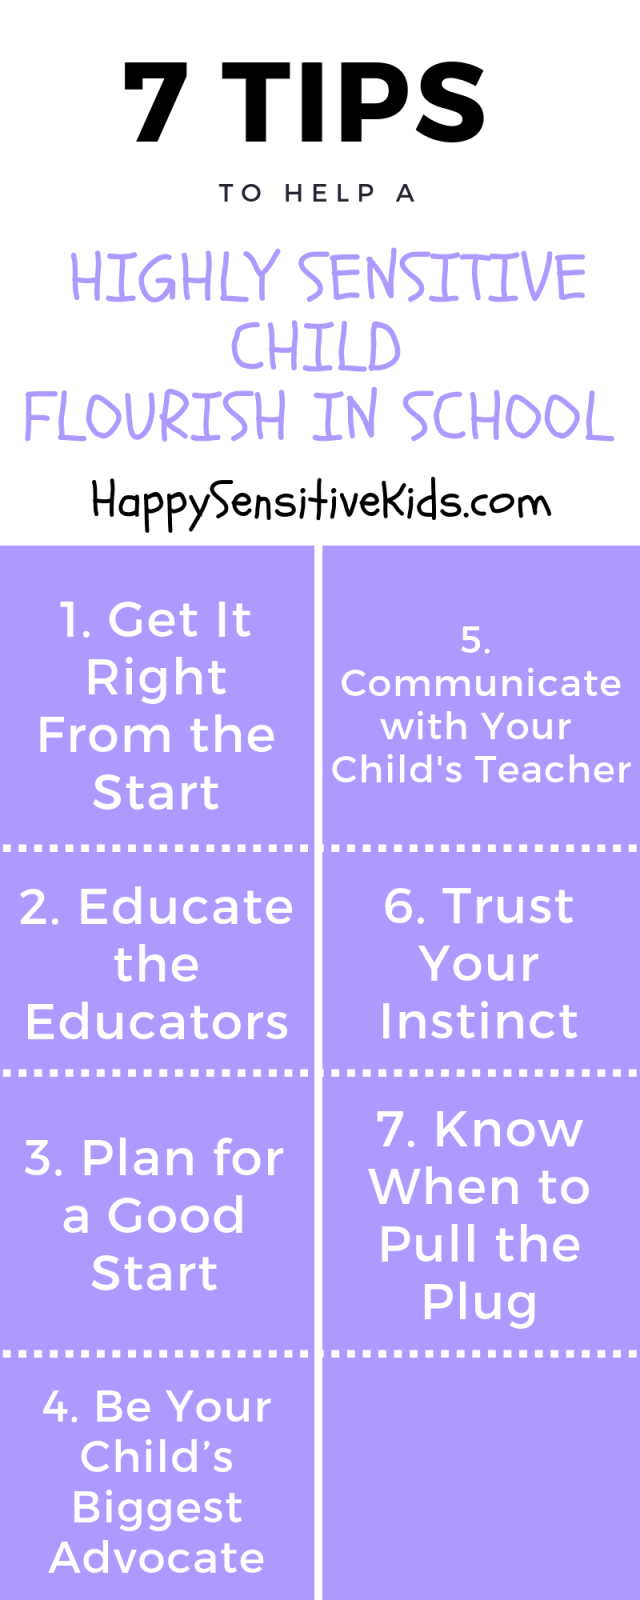 7-tips-to-help-a-highly-sensitive-child-flourish-in-school-infog